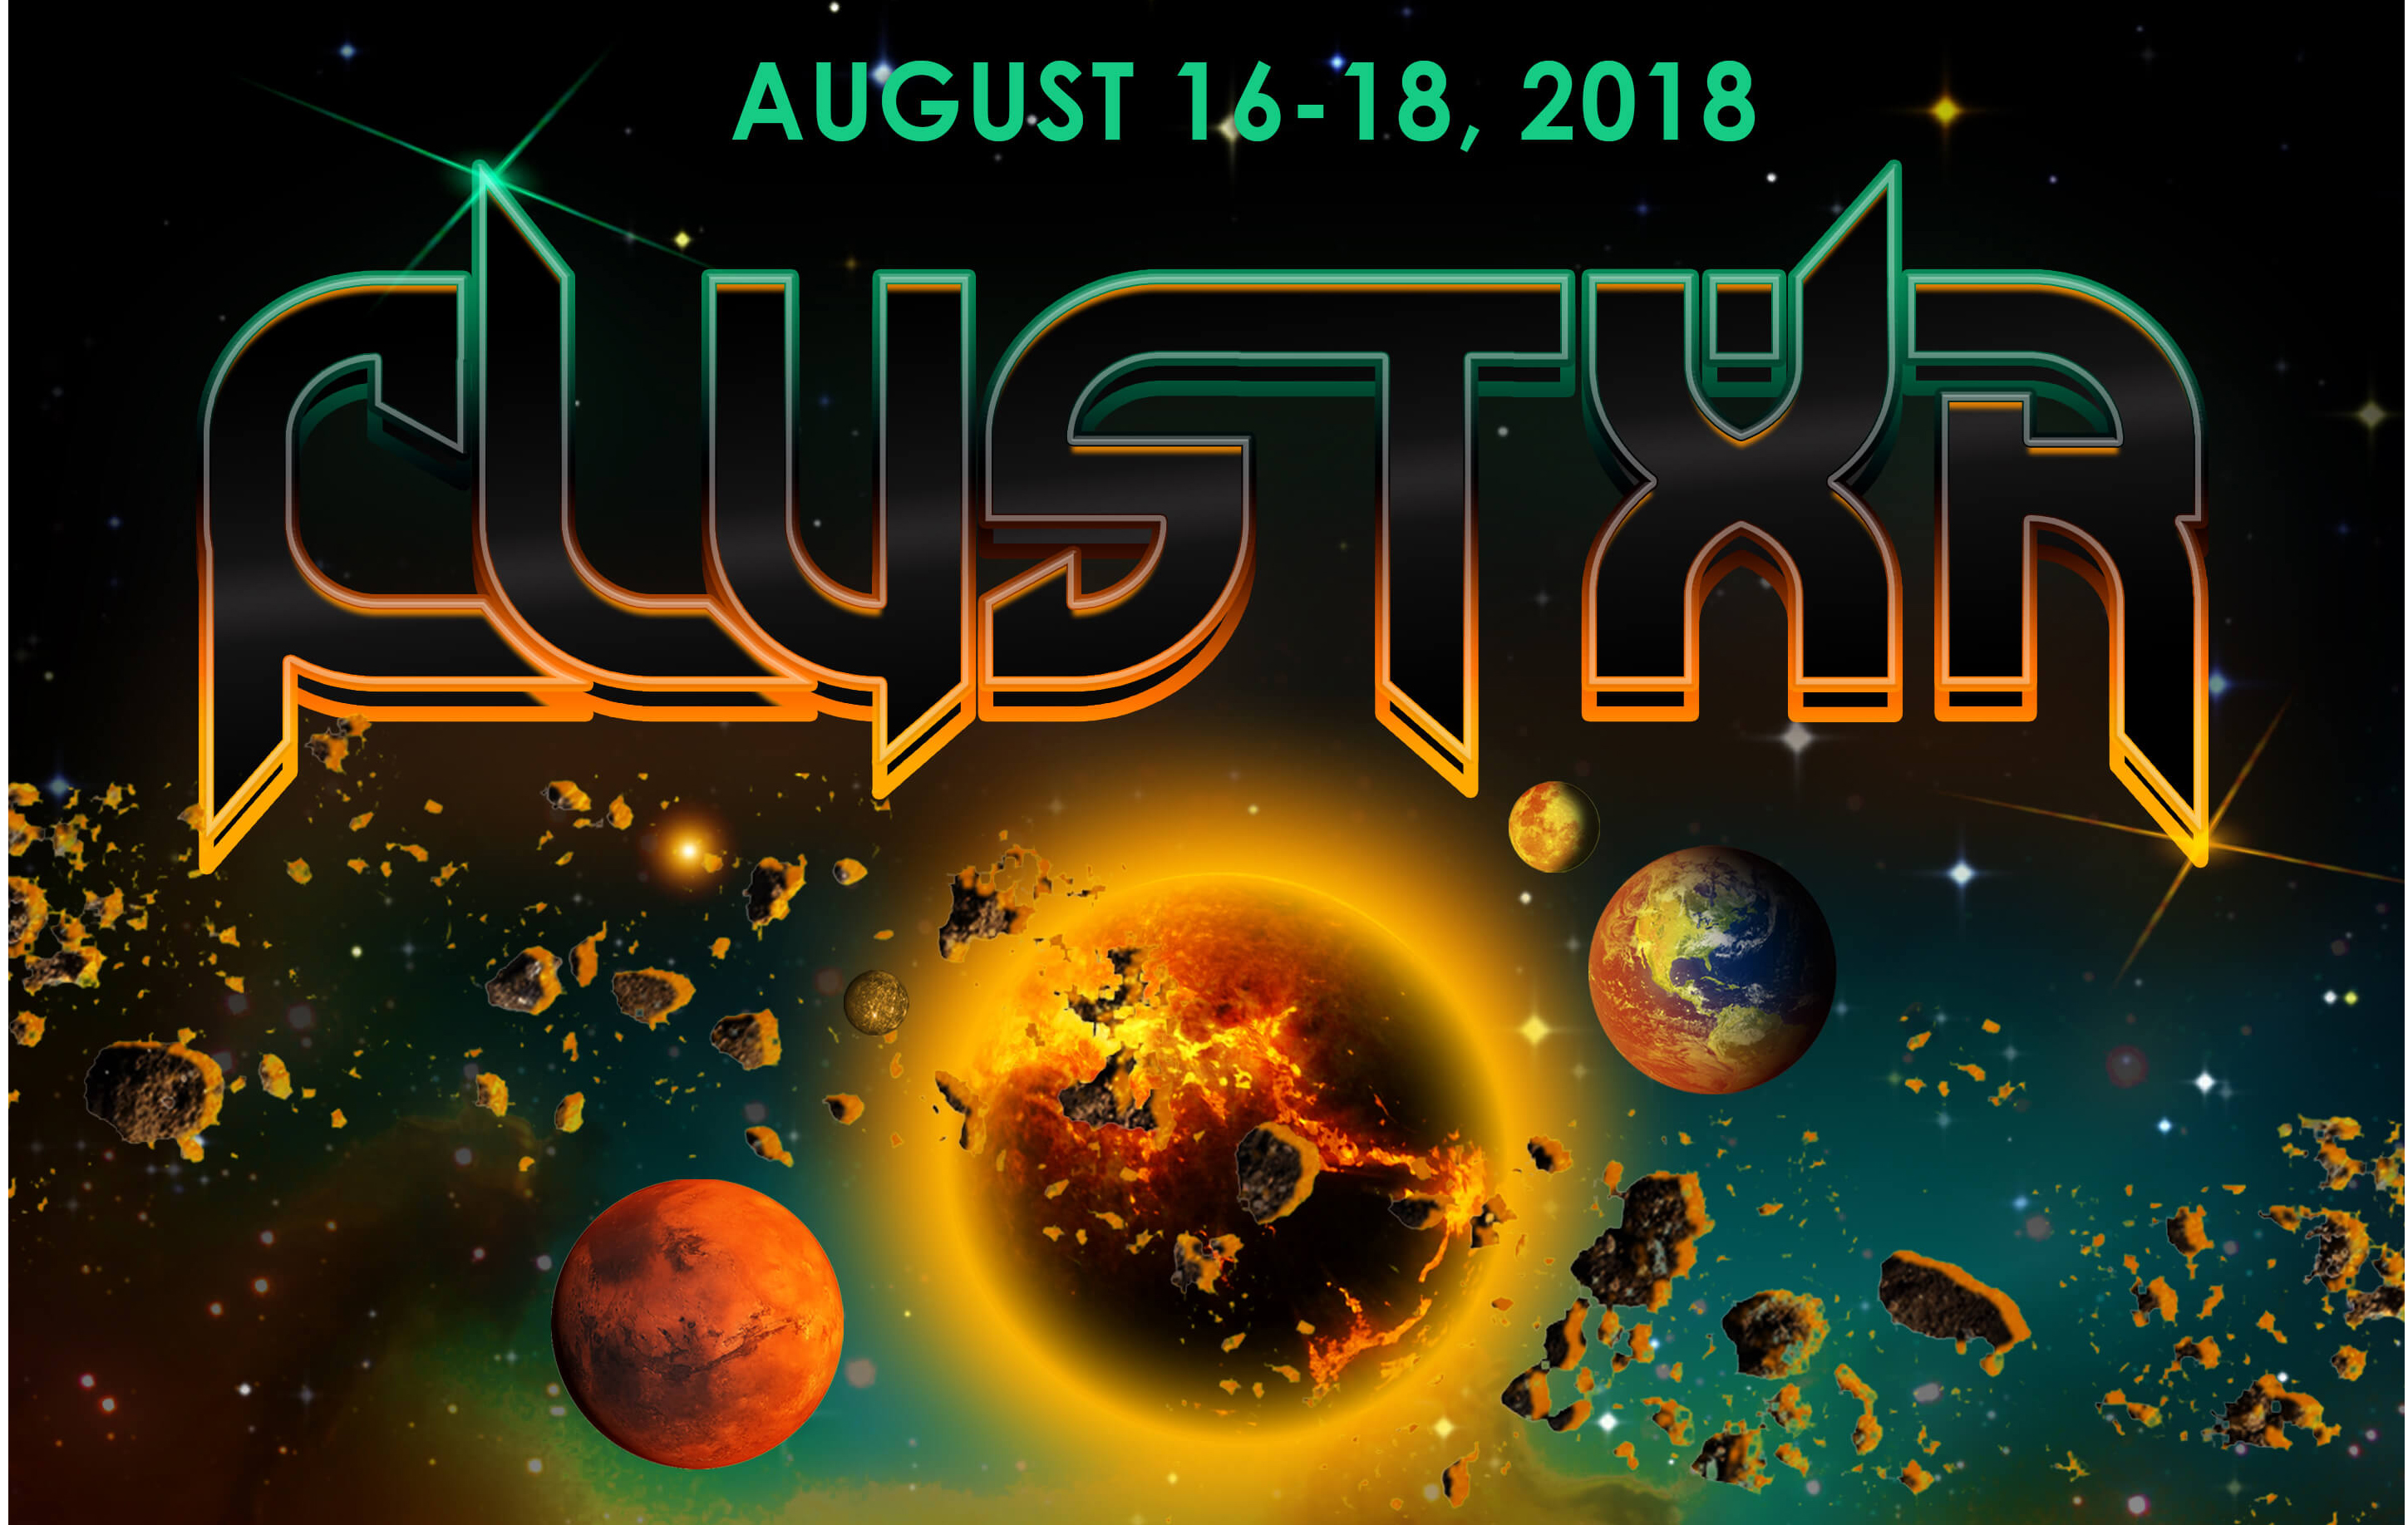 How Clustxr Music Festival Plans to Rock Appalachia this August